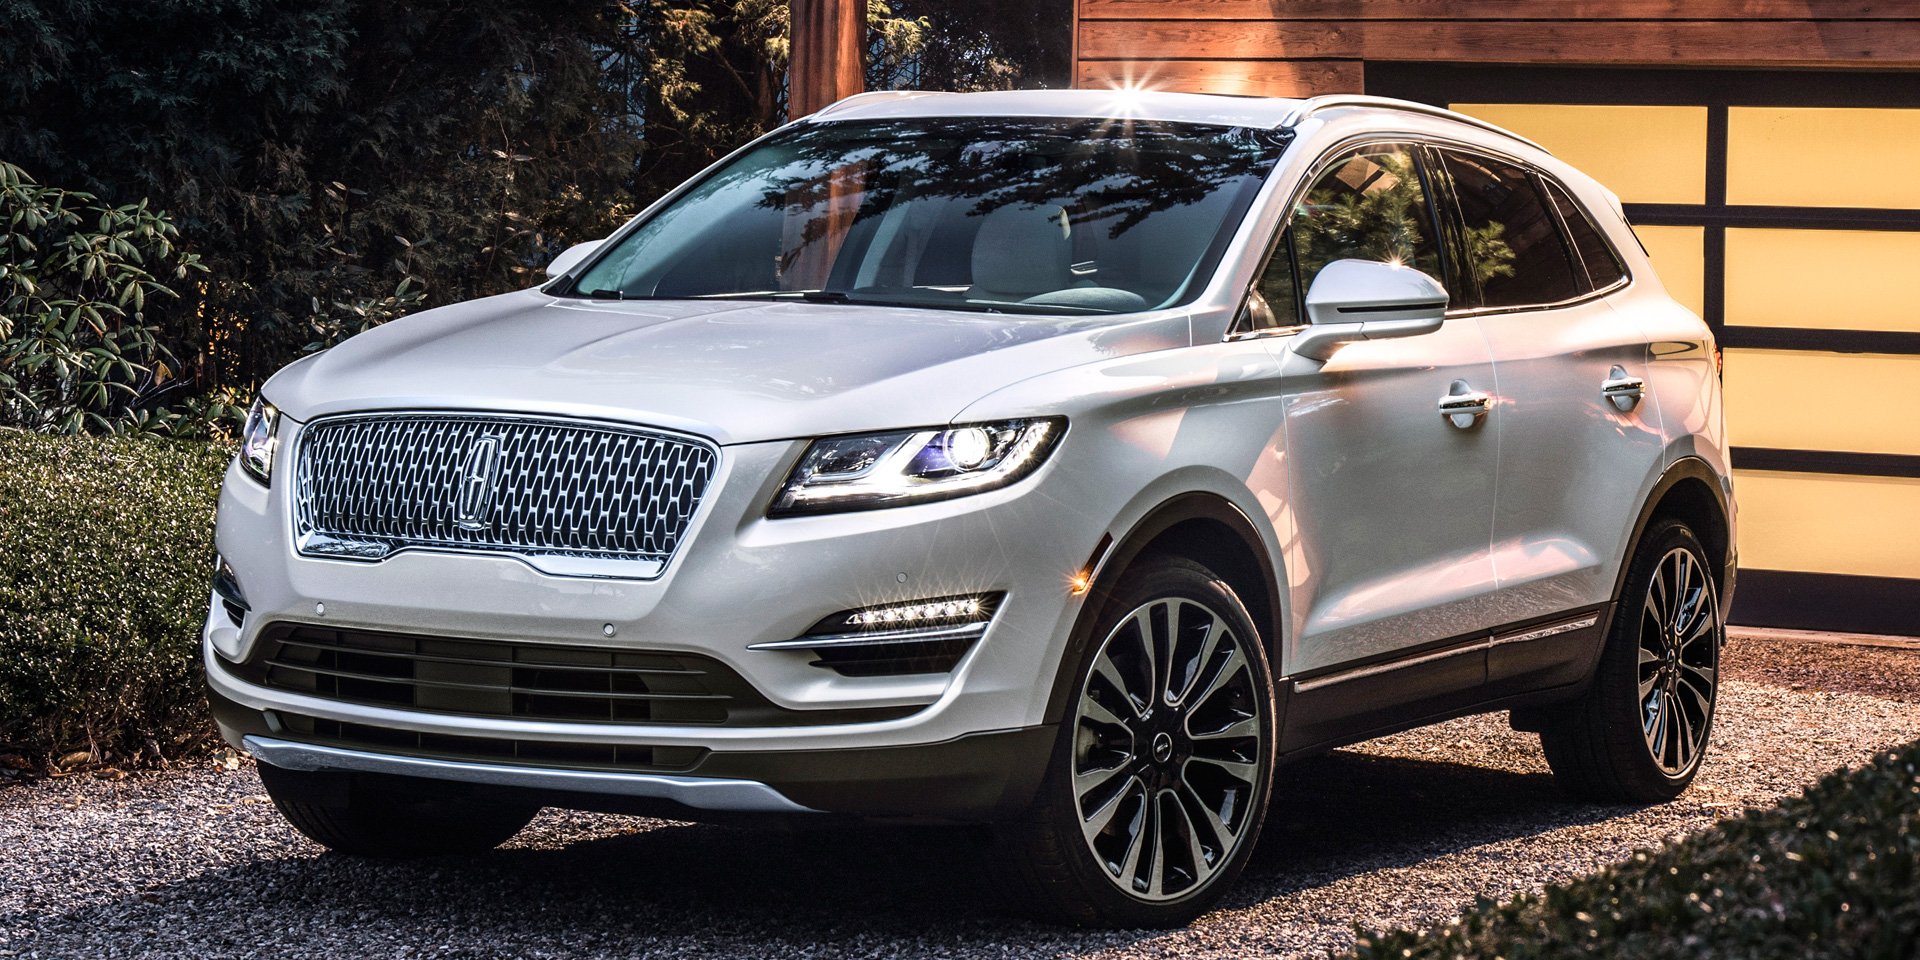 2019 - Lincoln - MKC - Vehicles on Display | Chicago Auto Show